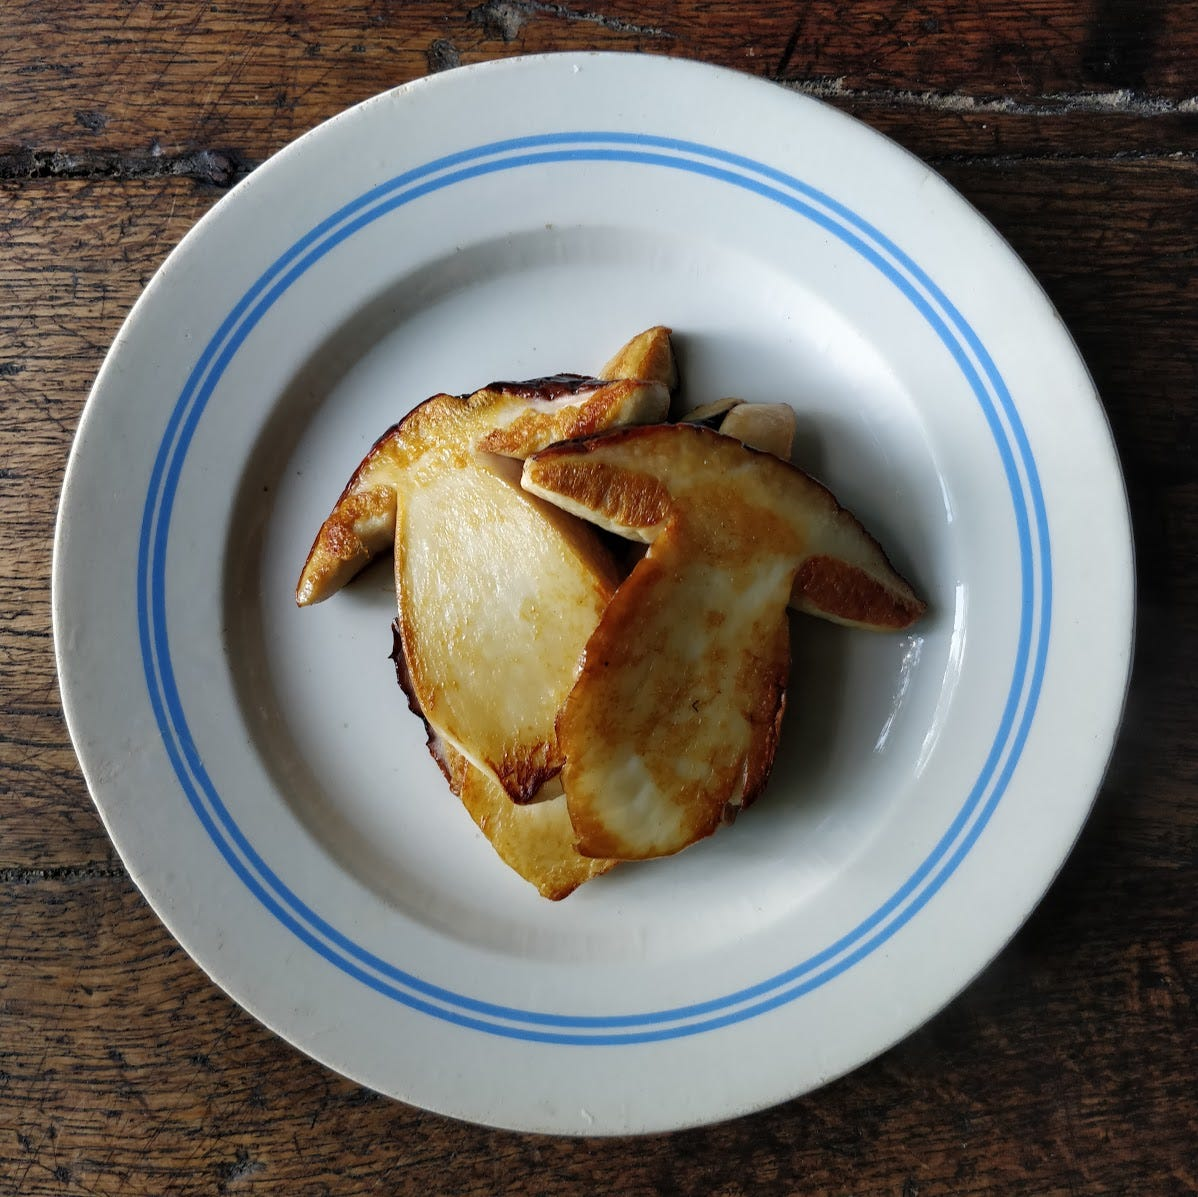 Boletus edulis, sliced and fried but otherwise unadorned, on a white plate with blue rings around the rim.